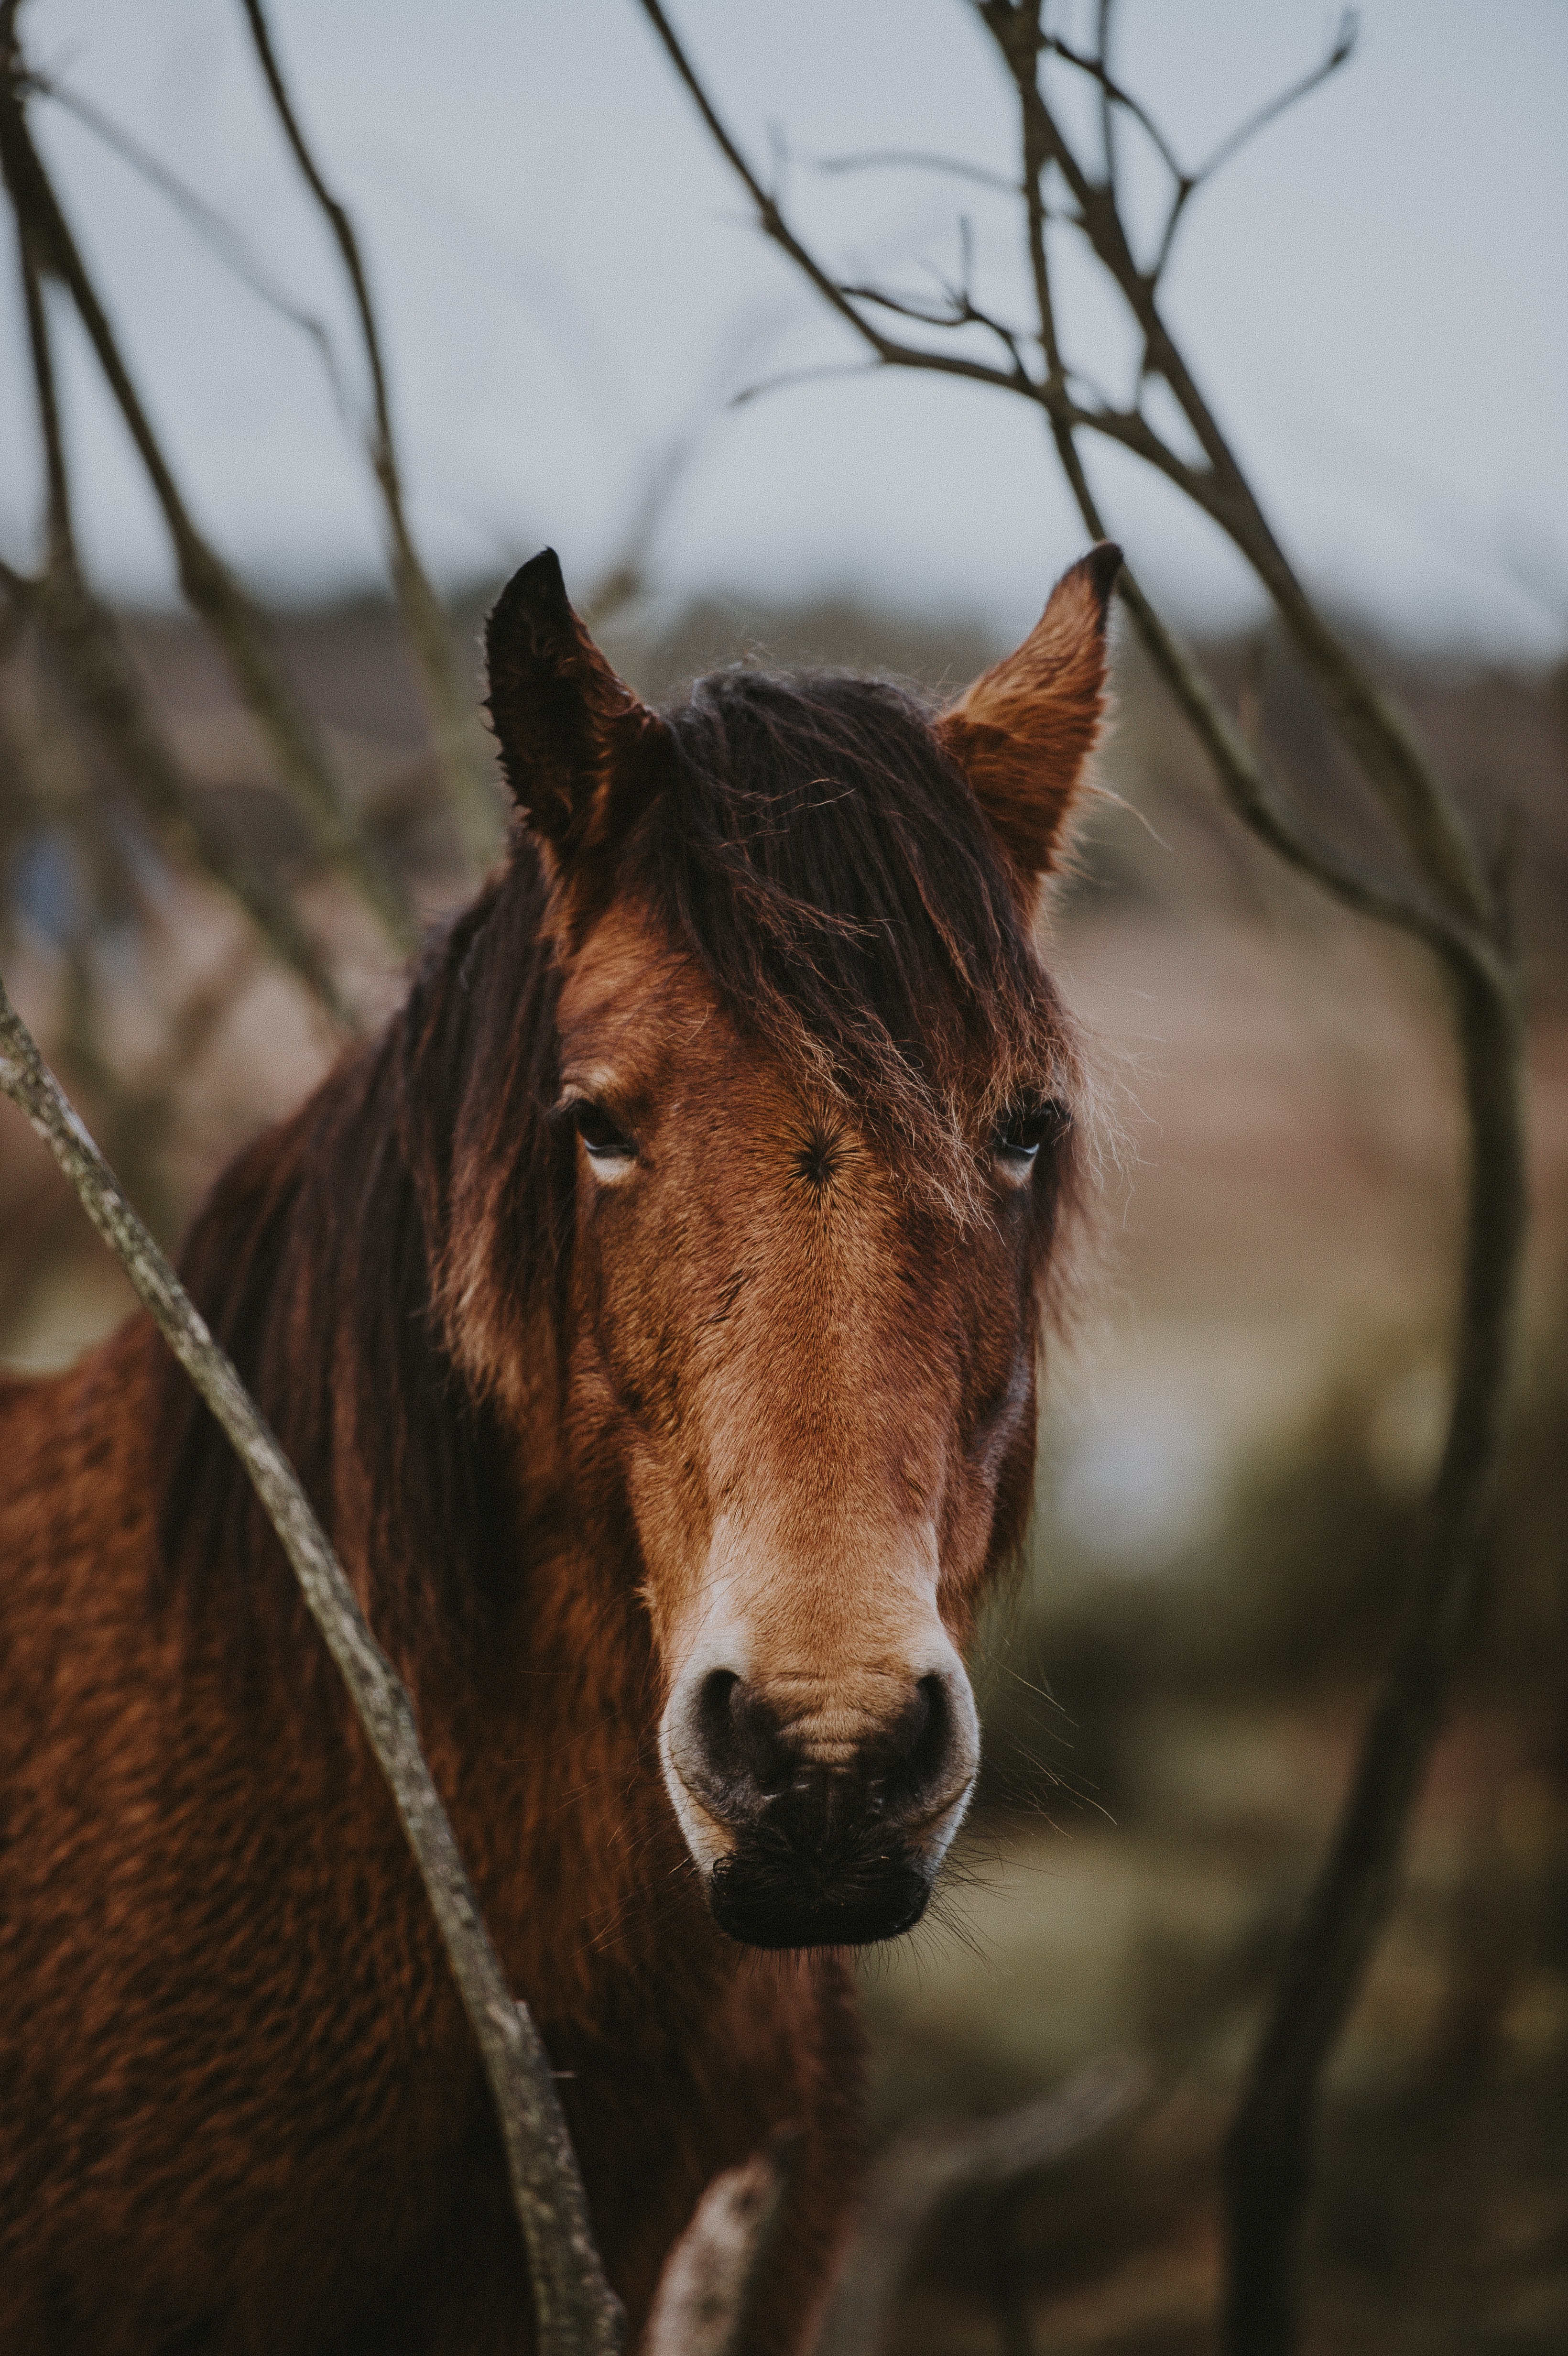 closeup photo of brown horse near bare tree